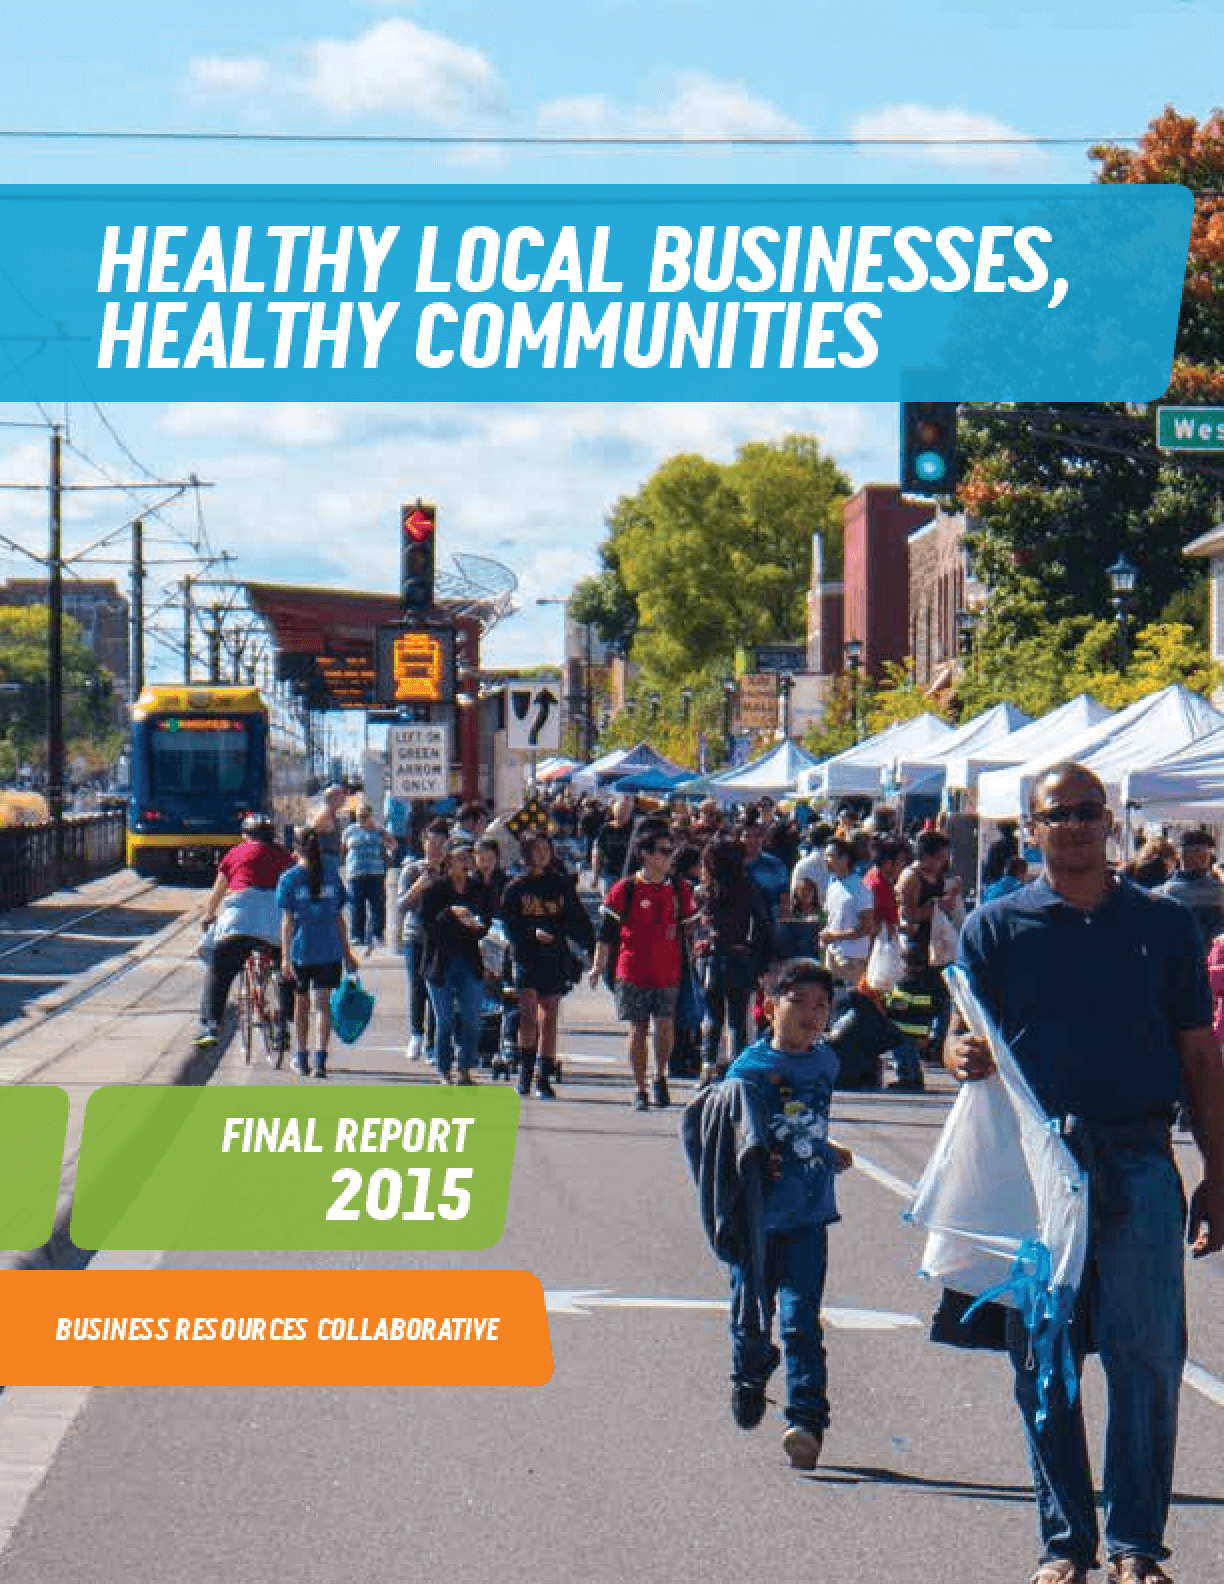 Healthy Local Businesses, Healthy Communities: Final Report 2015